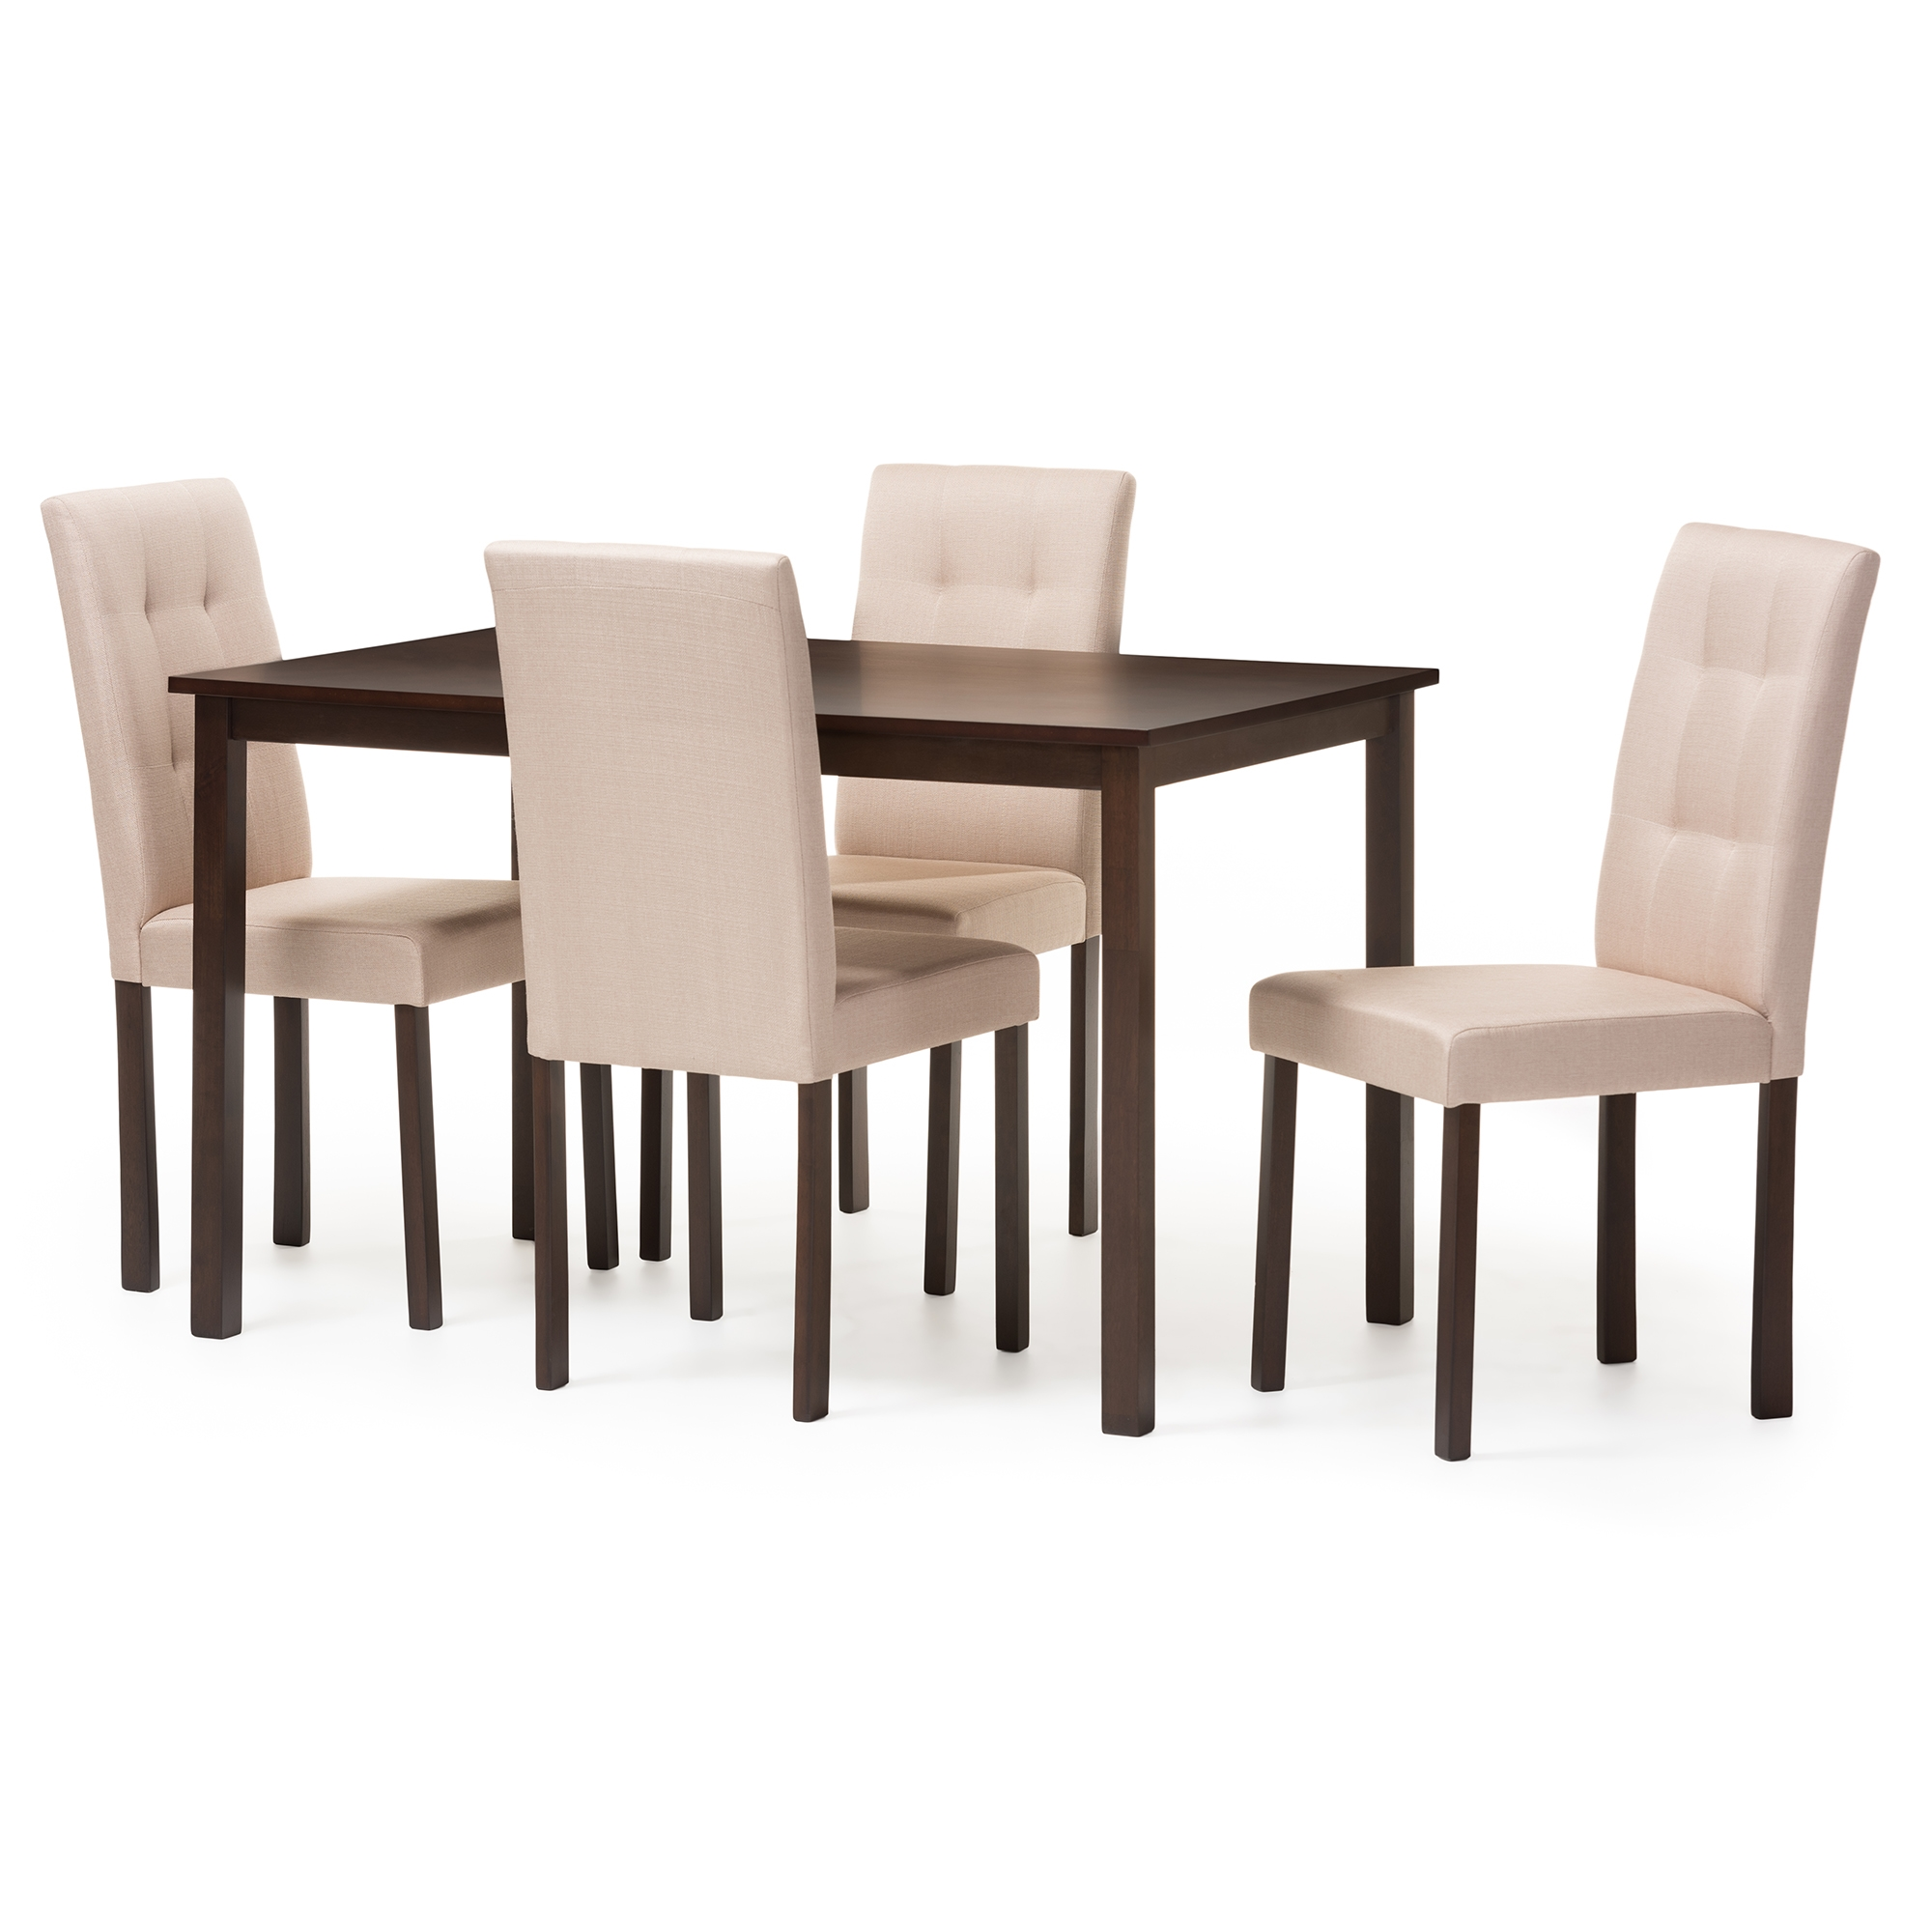 Nice Baxton Studio Andrew Modern And Contemporary 5 Piece Beige Fabric  Upholstered Grid Tufting Dining Set